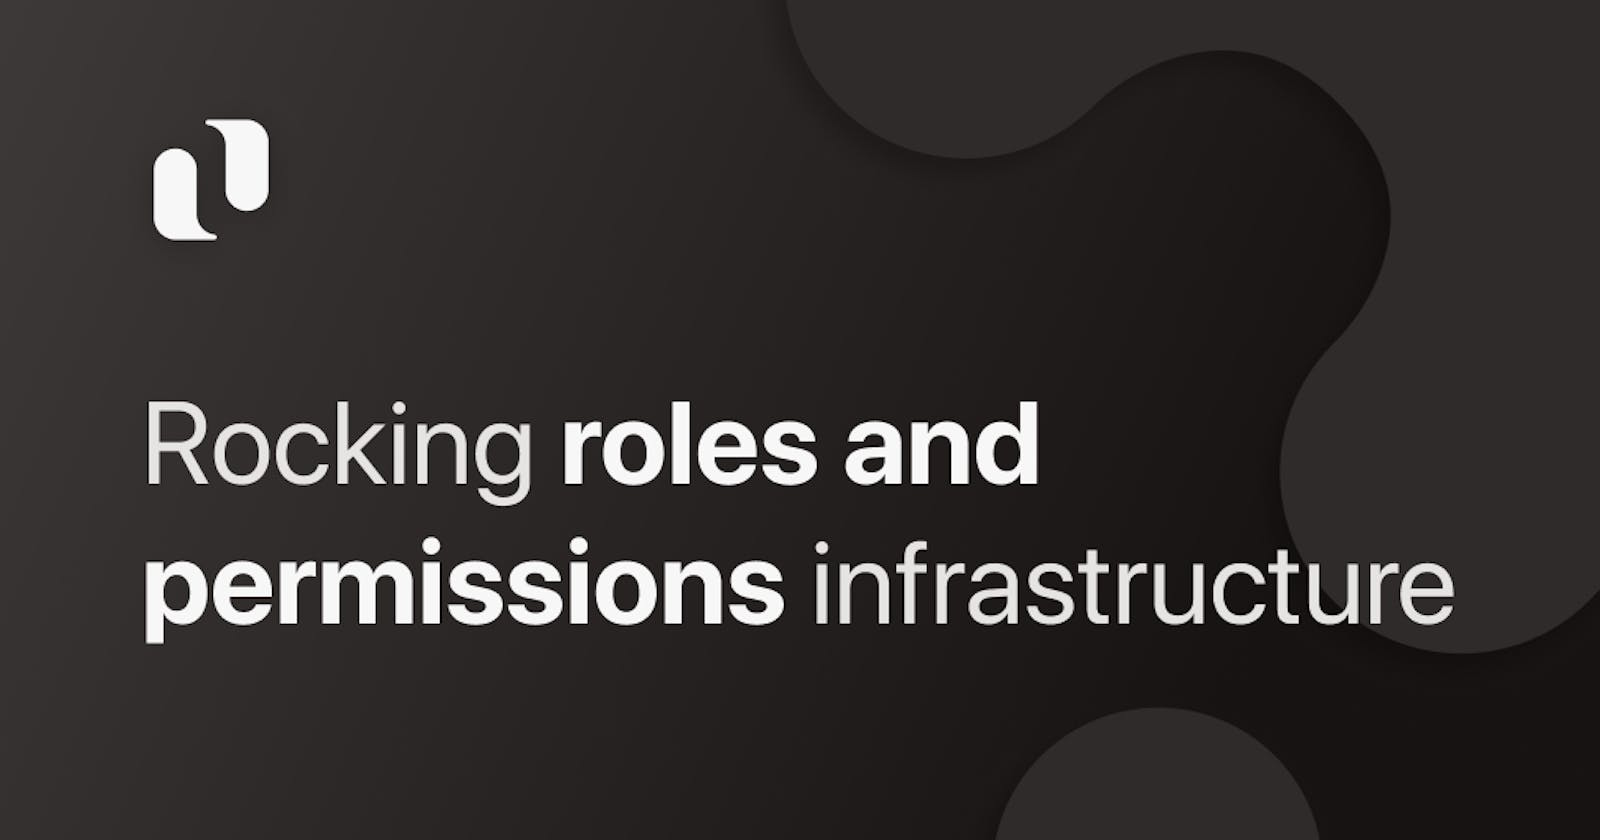 Rocking roles and permissions infrastructure